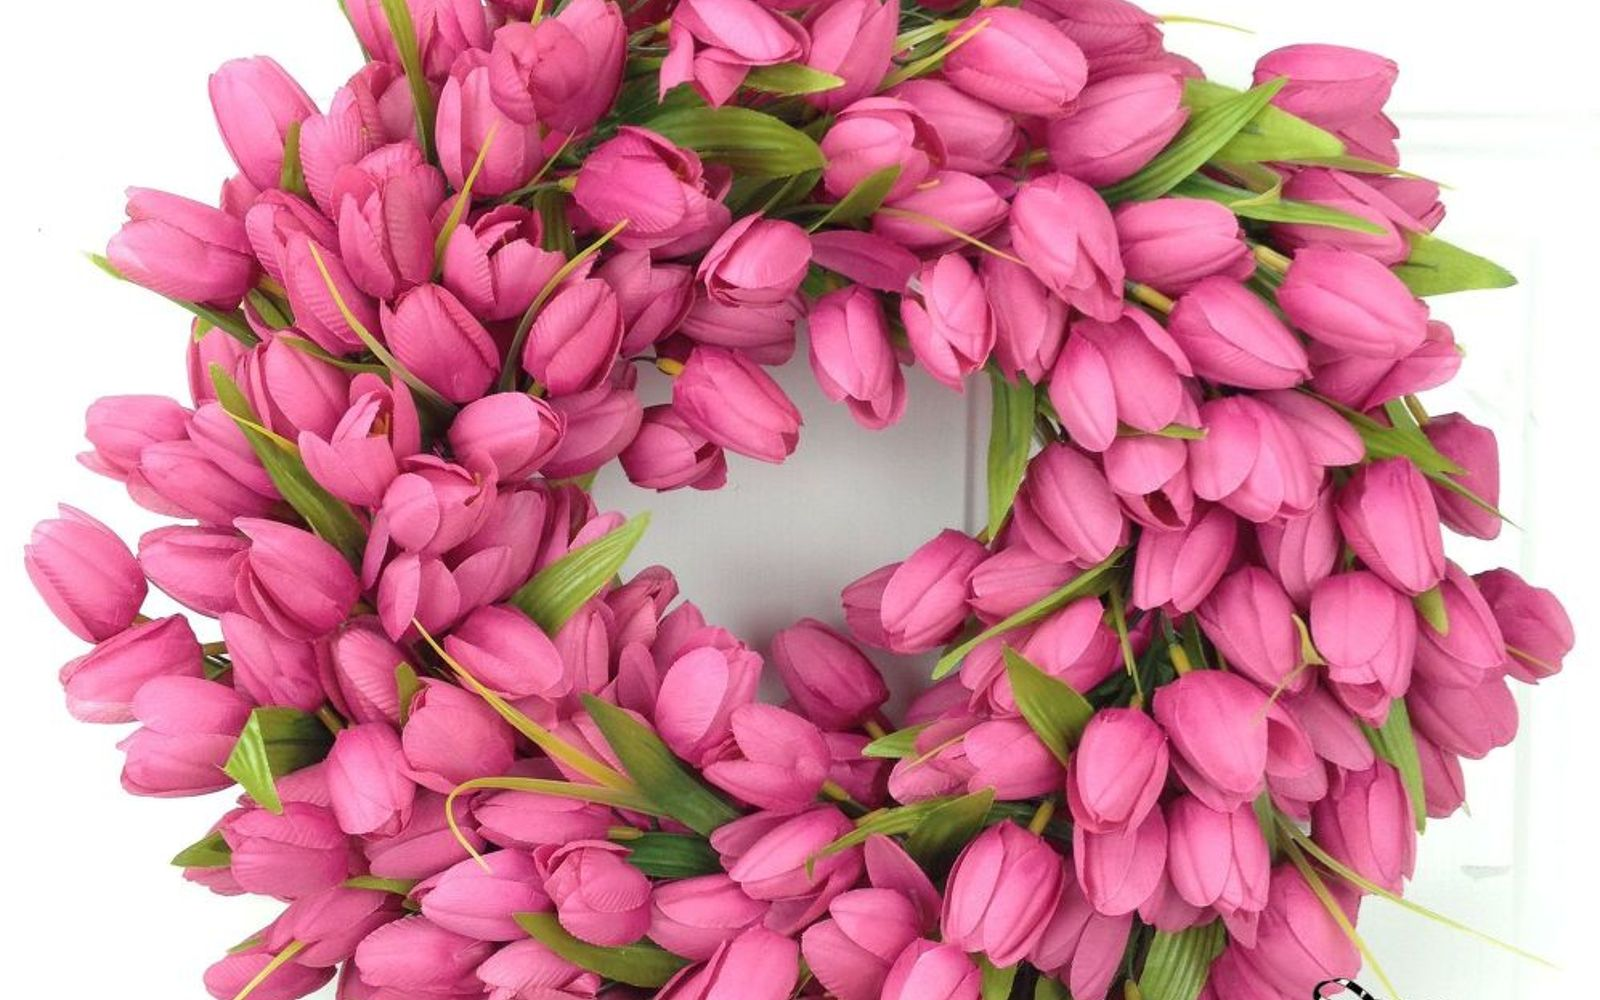 s 31 gorgeous spring wreaths that will make your neighbors smile, crafts, seasonal holiday decor, wreaths, Weave this explosion of tulips with ribbon